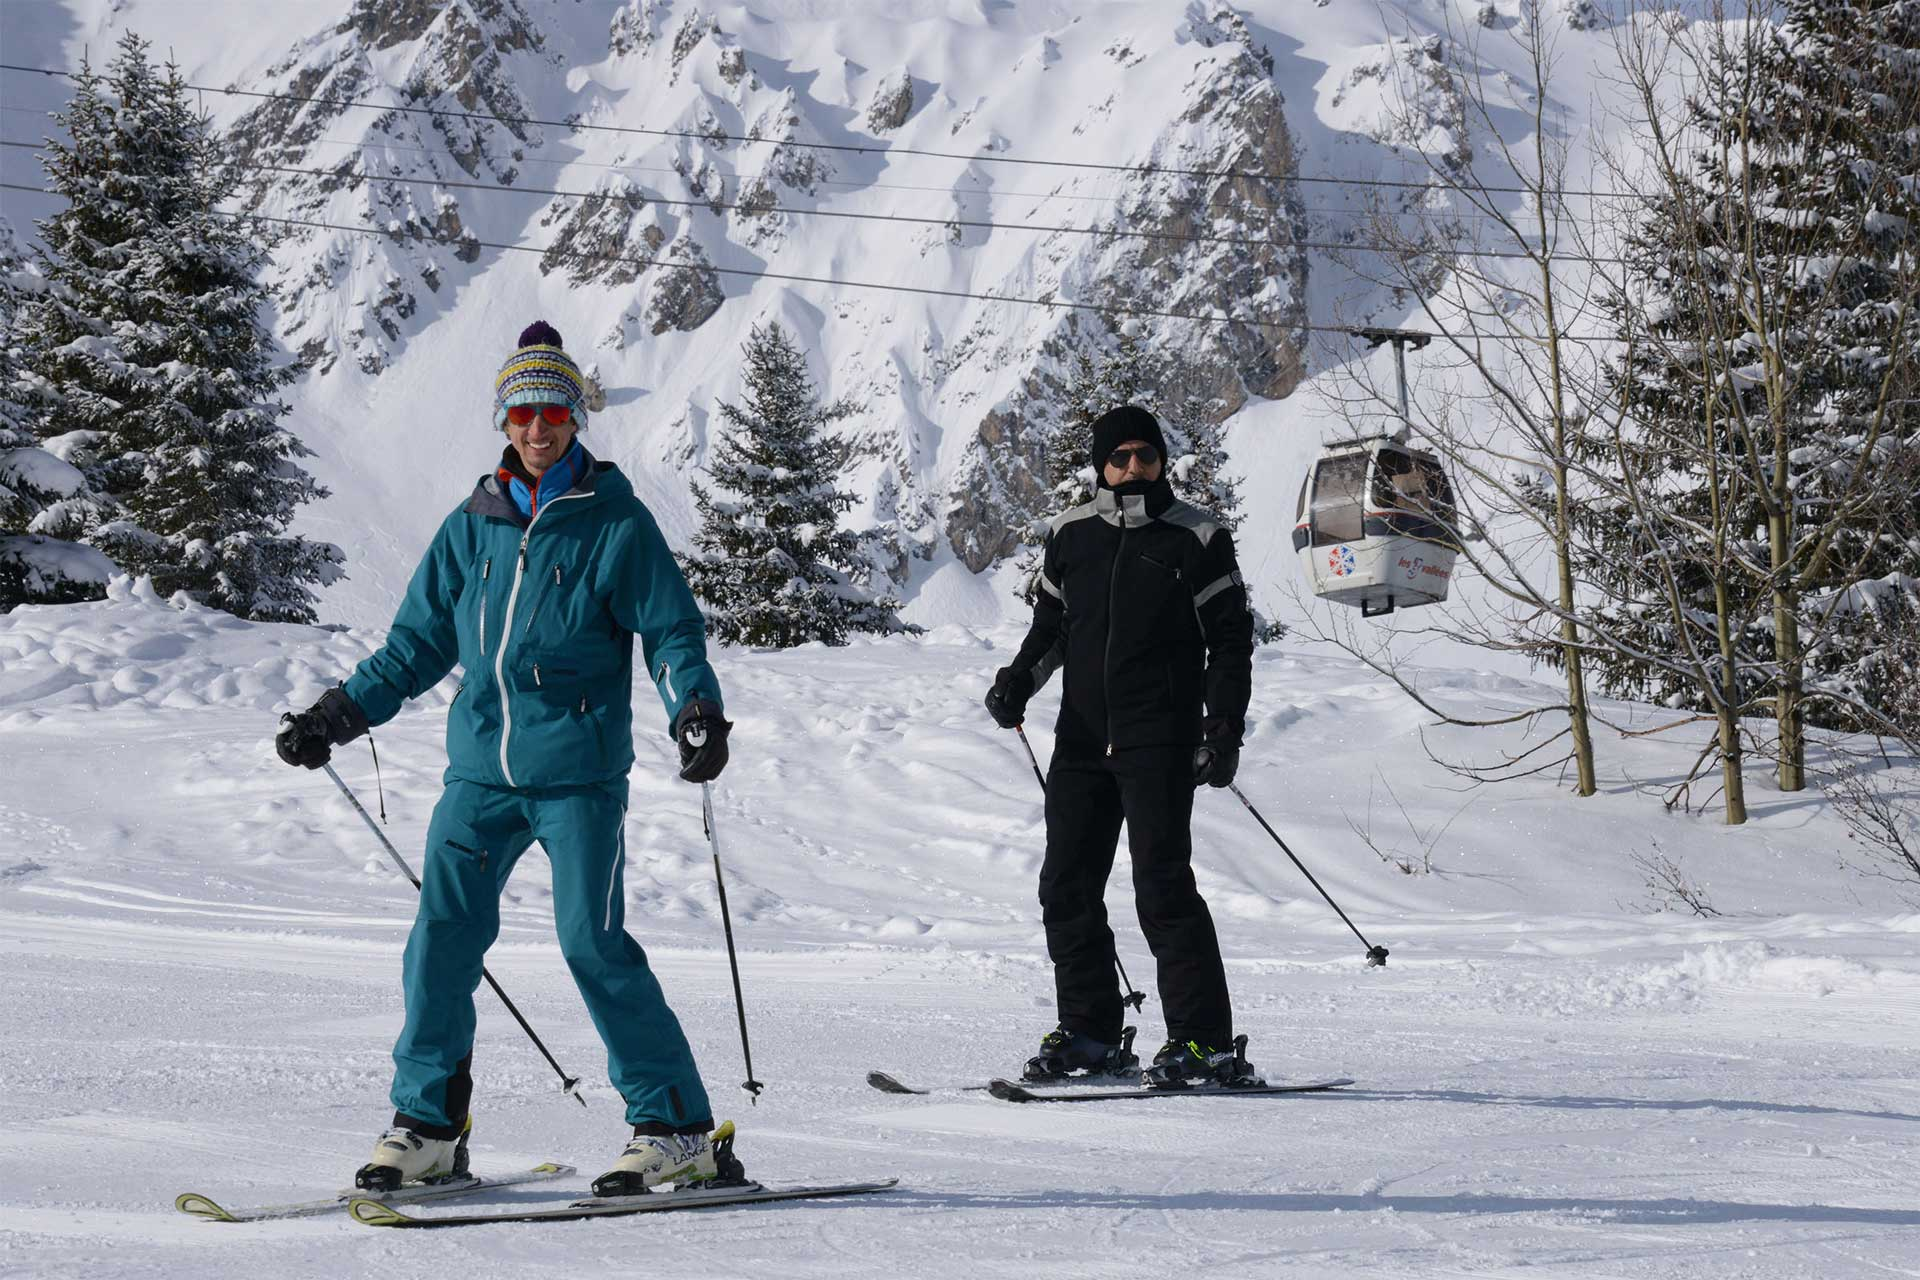 Private Ski Instructor - Courchevel Experience - Luxury Service